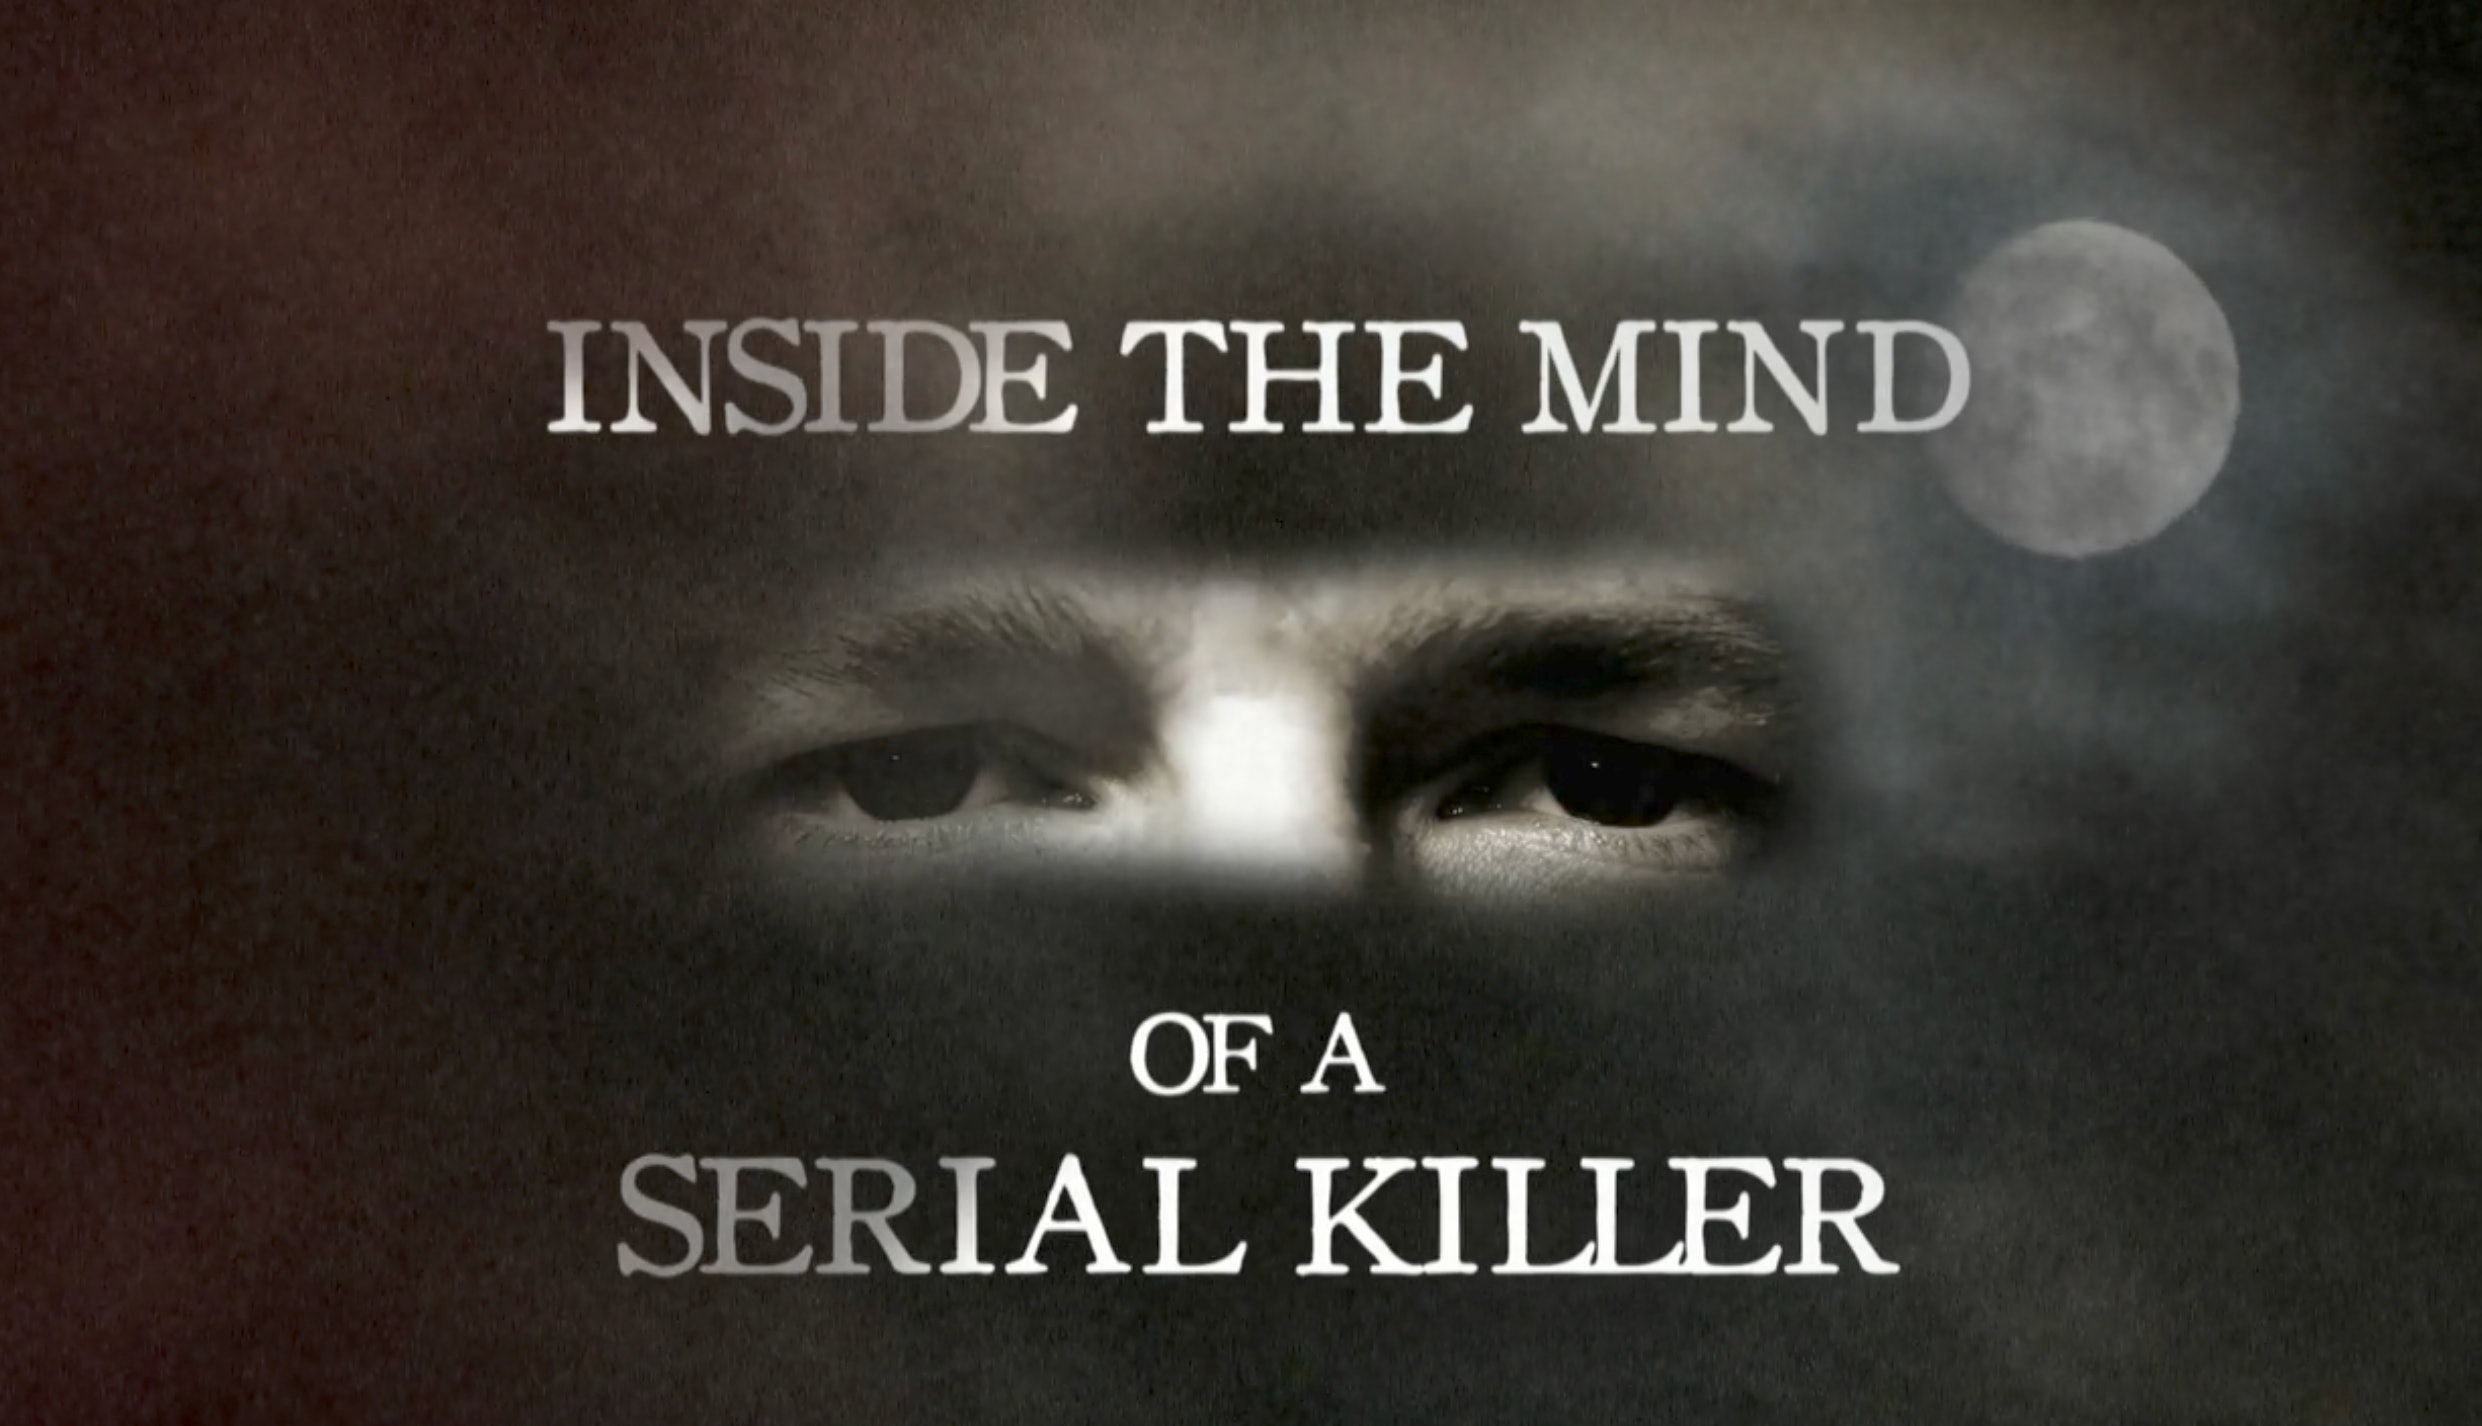 17 True Crime Shows & Movies On Netflix That Are Total Hidden Gems